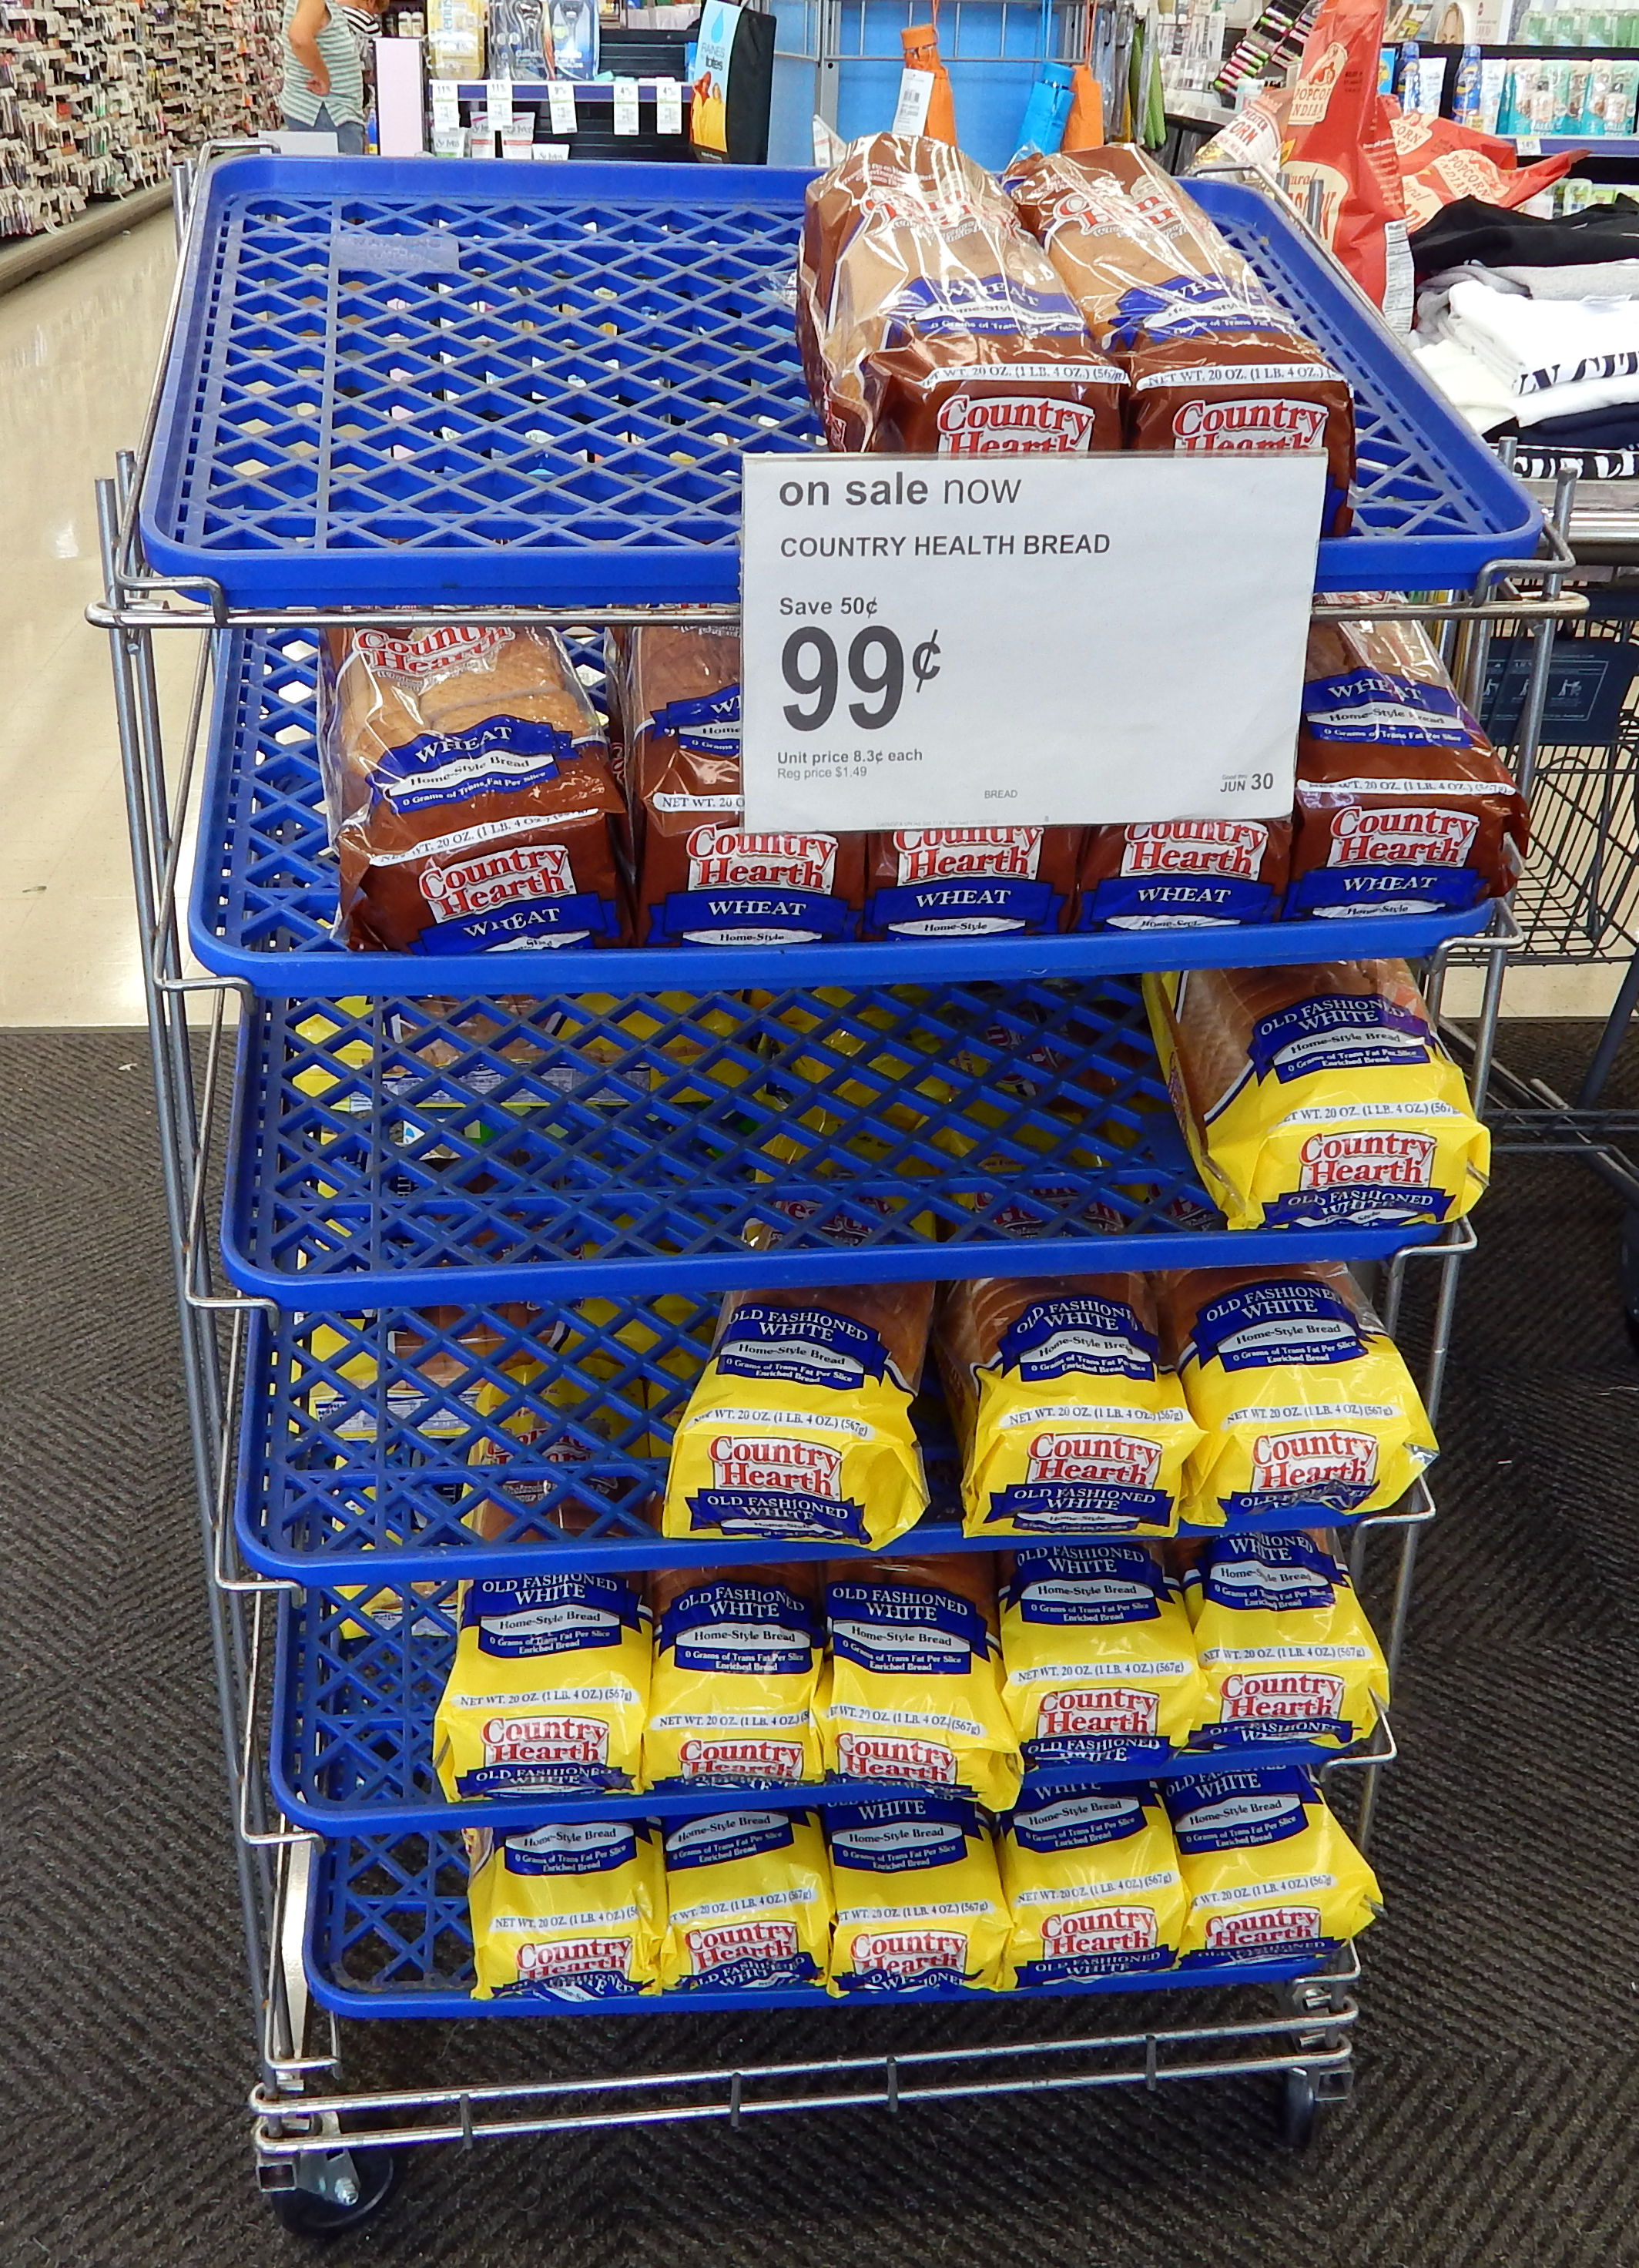 Country Hearth White Bread always 99 cents at Walgreens, Sun City Center, Florida [staff photo]